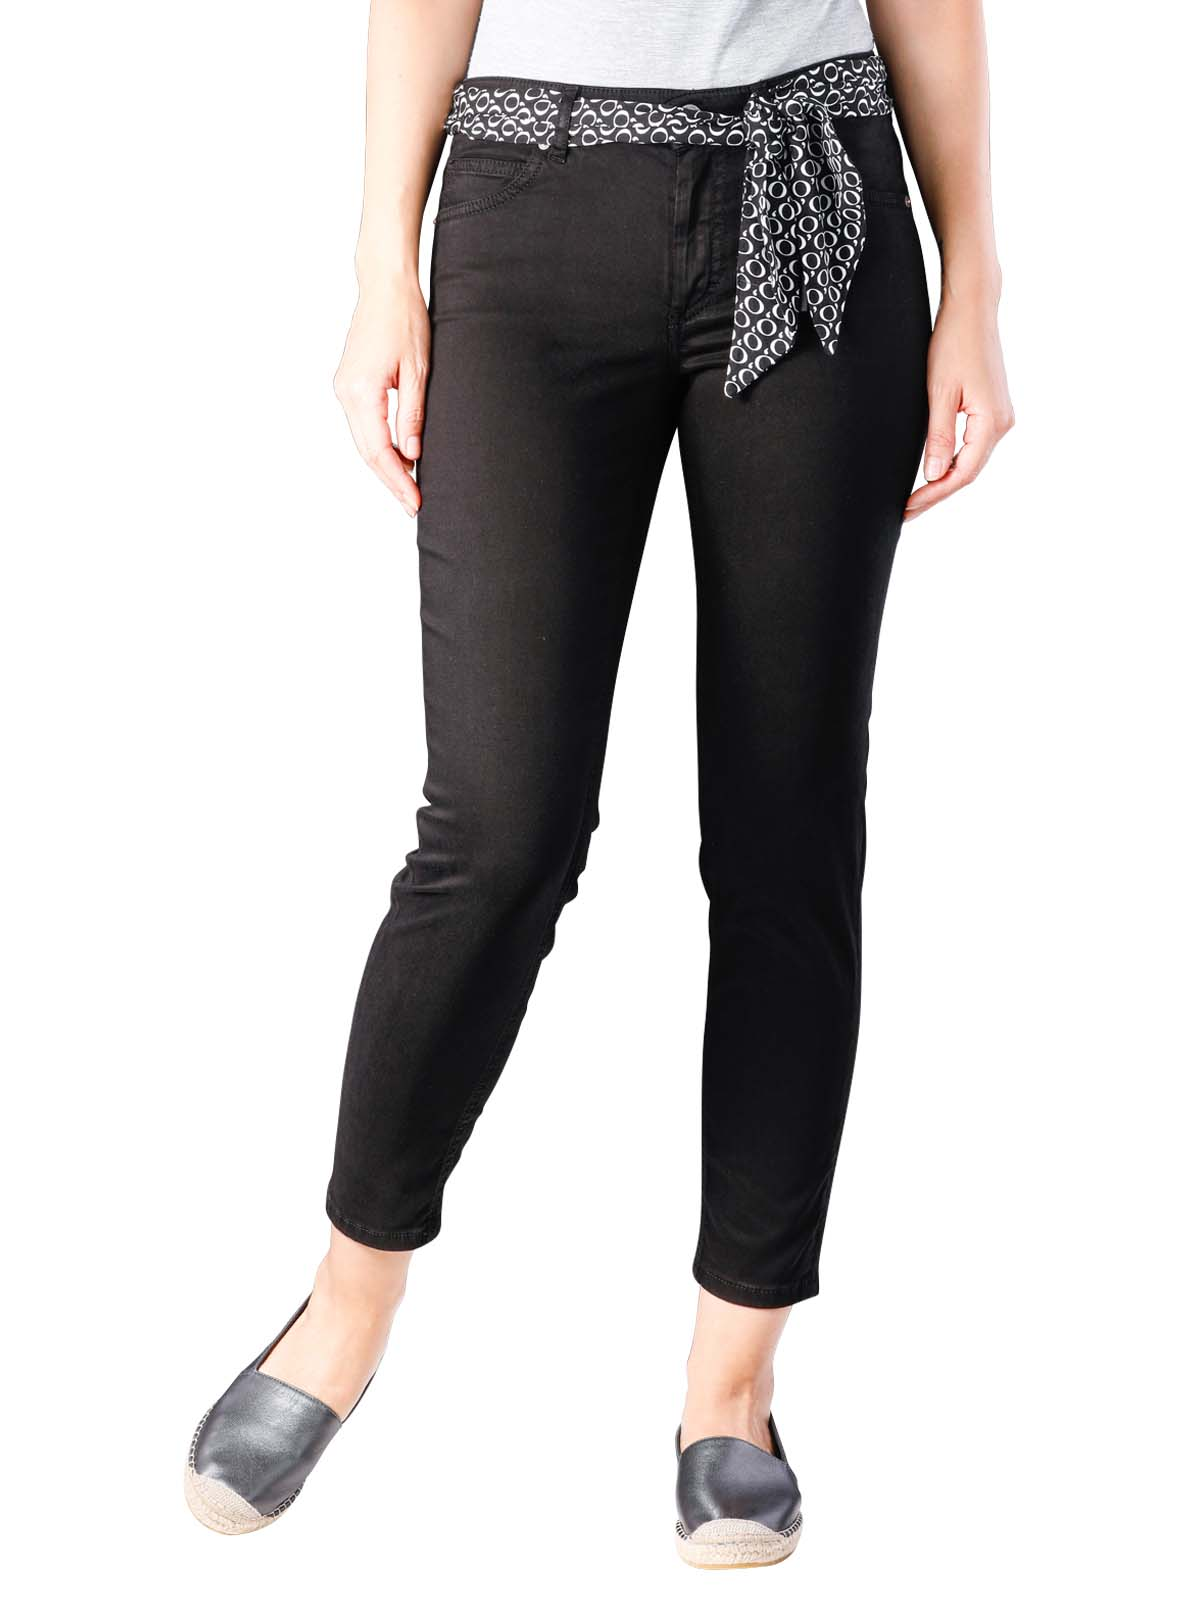 affordable price clearance sale offer discounts Marc O'Polo Lulea Slim Cropped Jeans black W26/L32